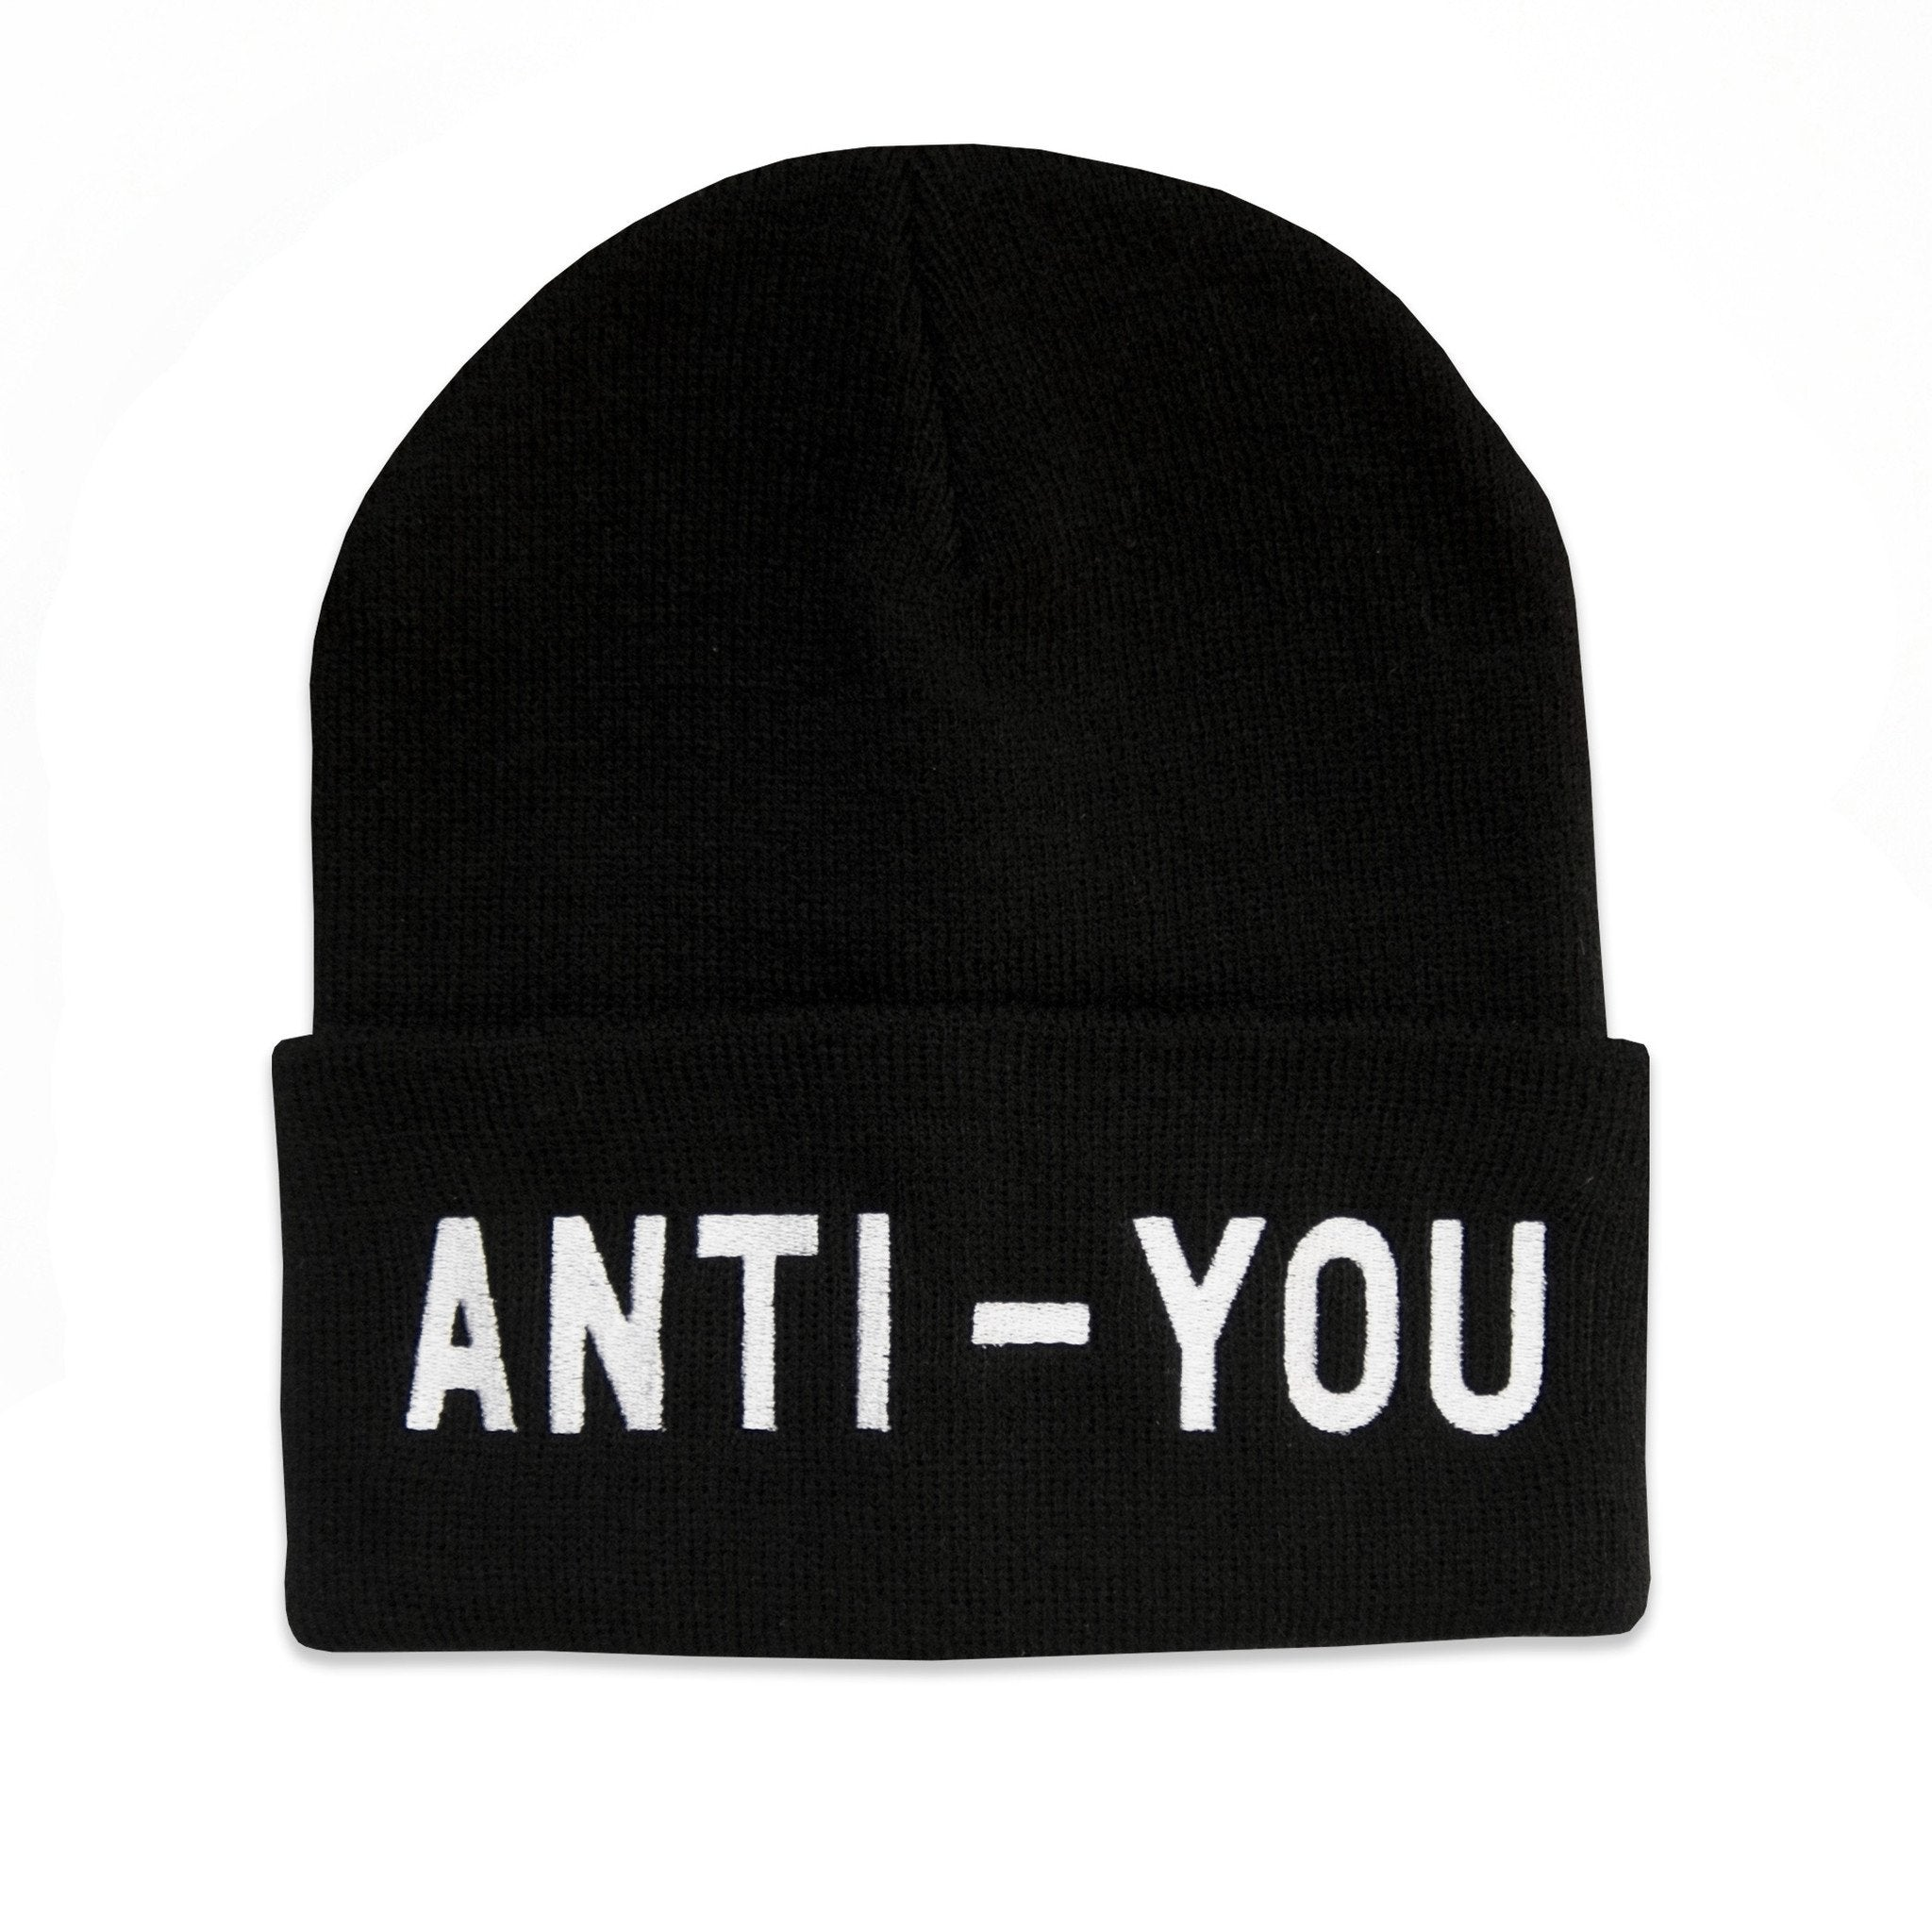 "No Fun Press - original ""Anti-You"" embroidered beanie toque"